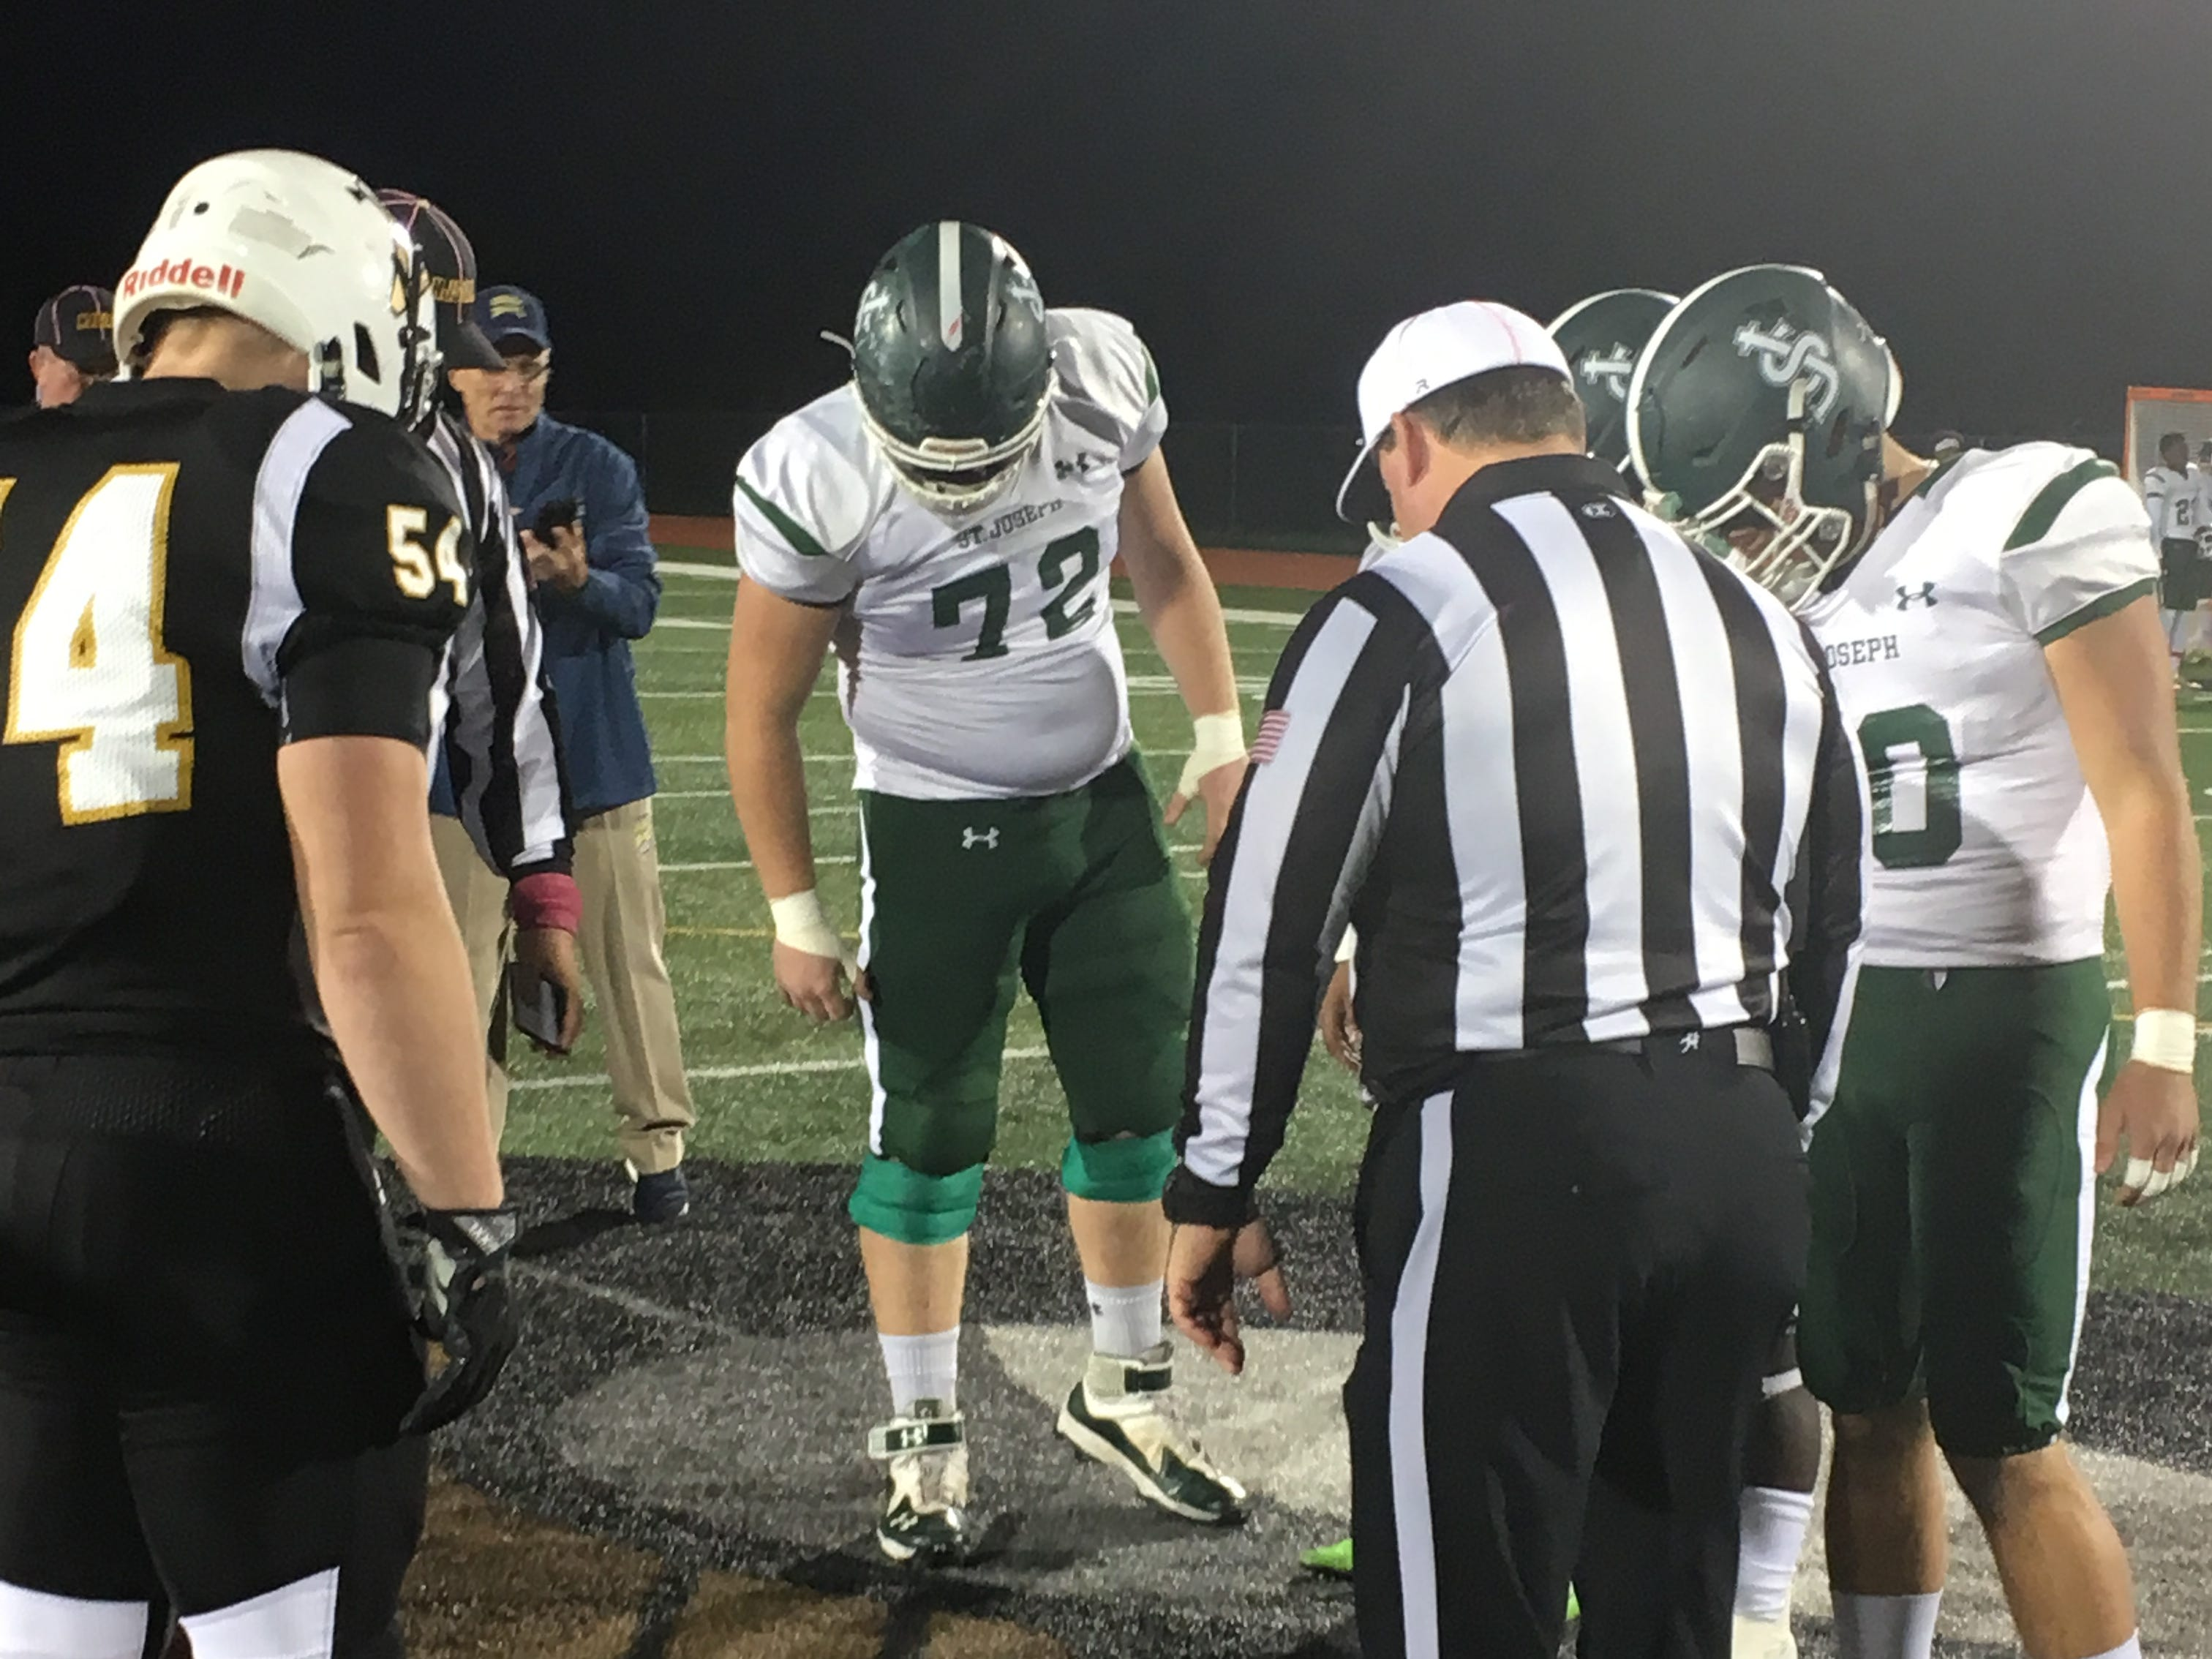 St. Joseph (Met.) at South Brunswick football on Friday, Oct. 12, 2018.